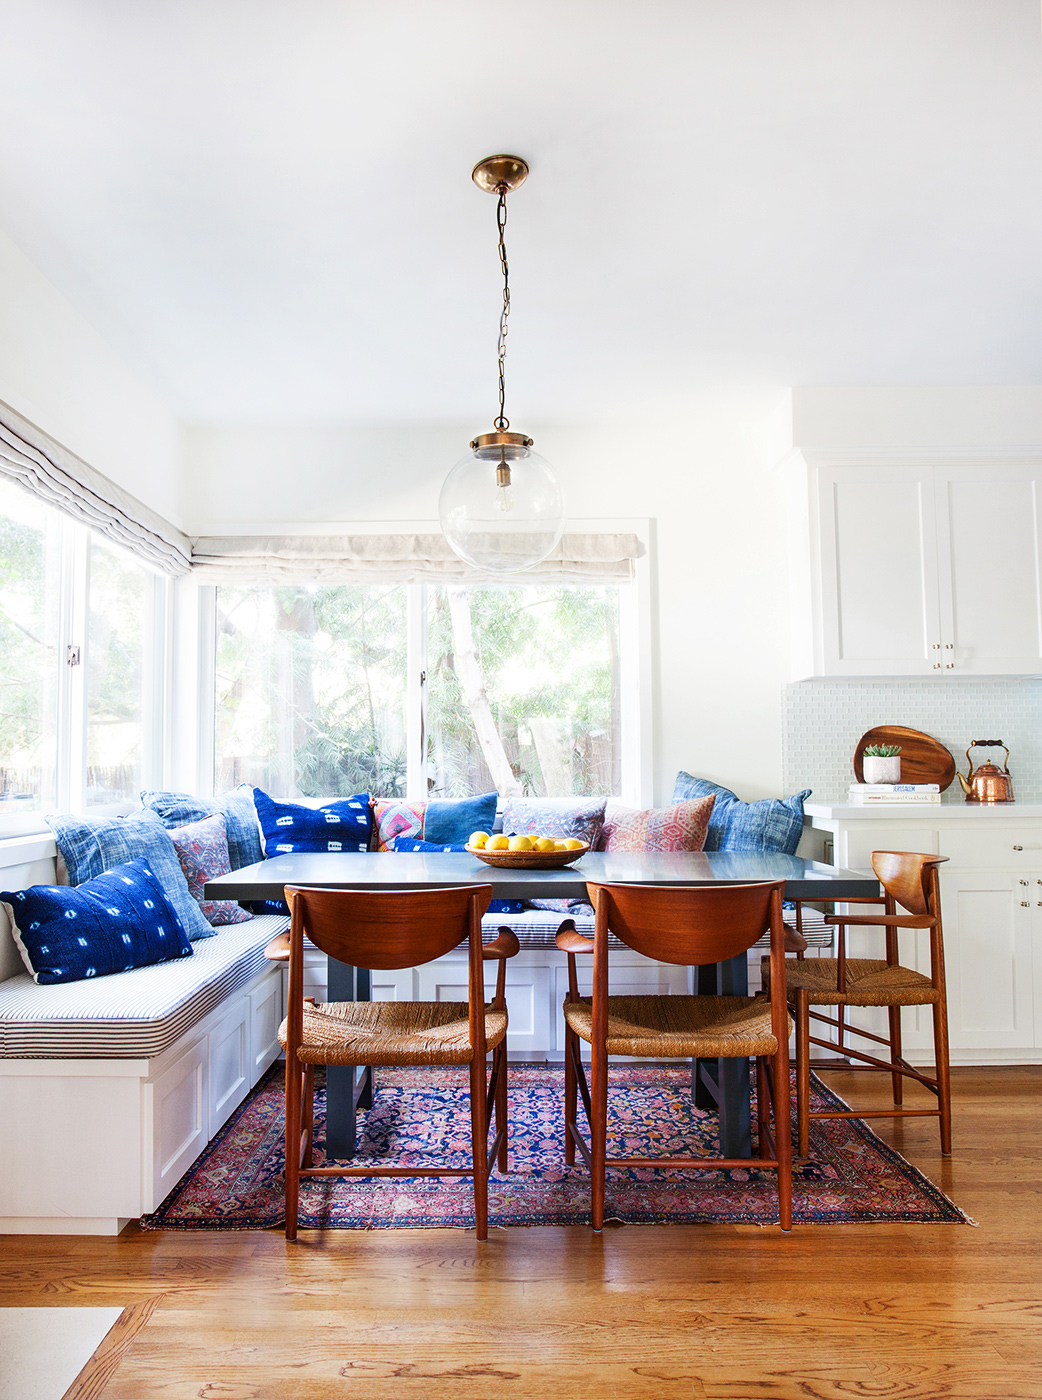 A New Family's Bohemian Eclectic California Home